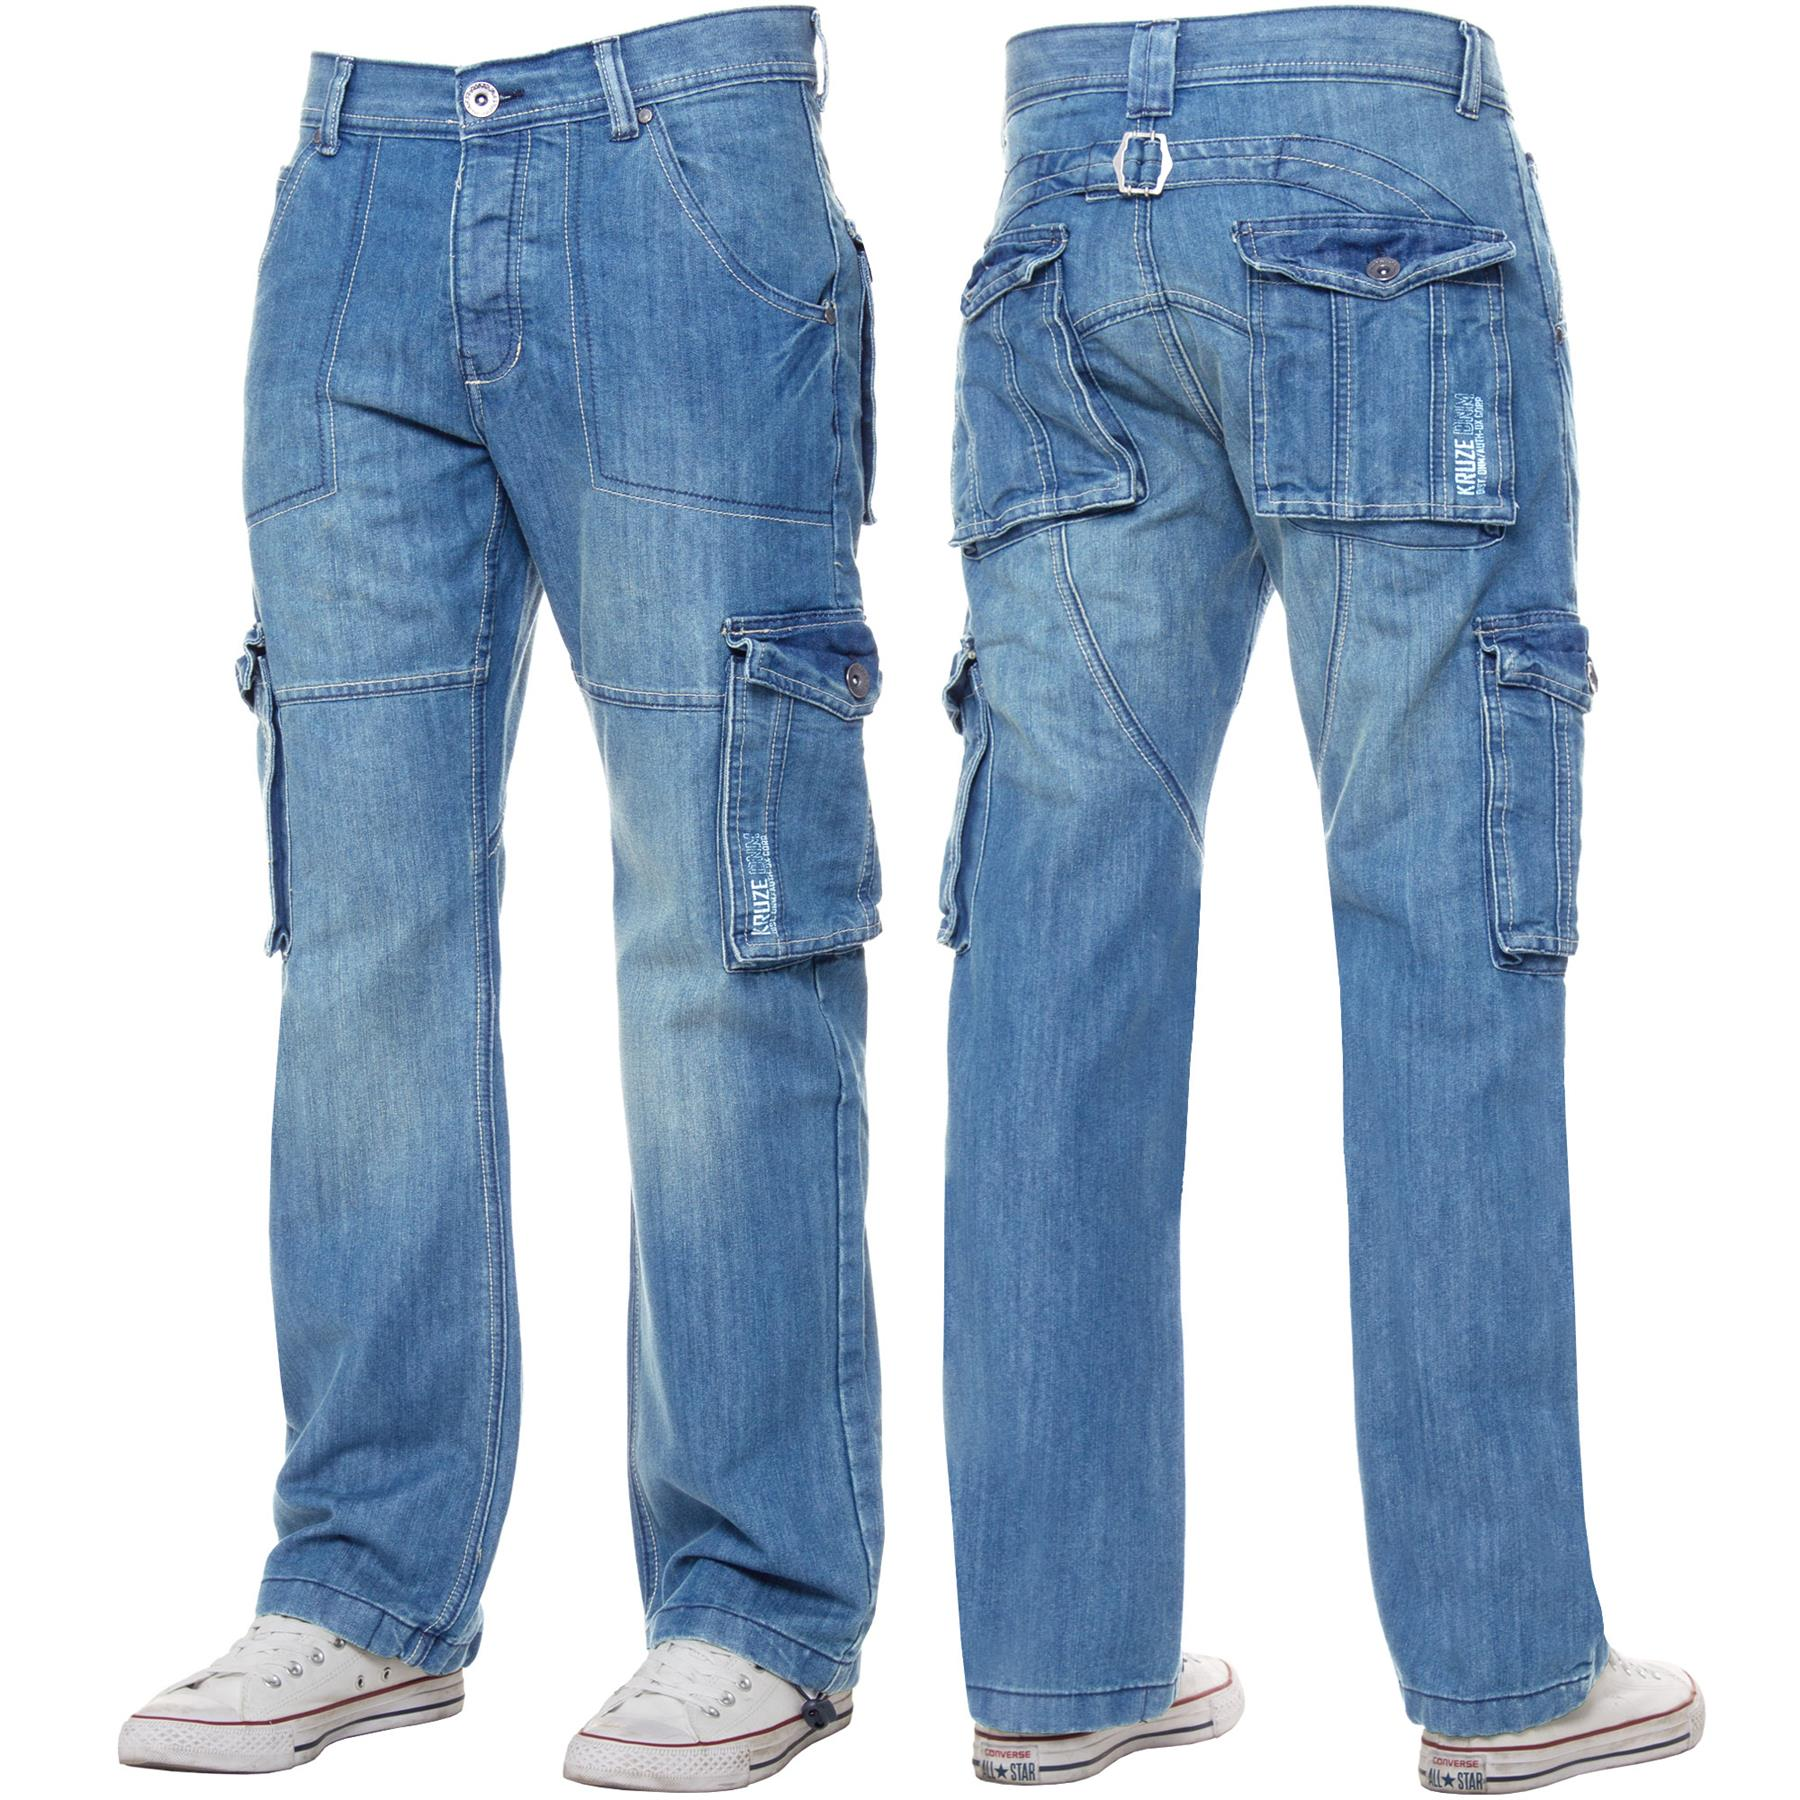 Kruze-Mens-Cargo-Combat-Jeans-Casual-Work-Denim-Pants-Big-Tall-All-Waist-Sizes thumbnail 45